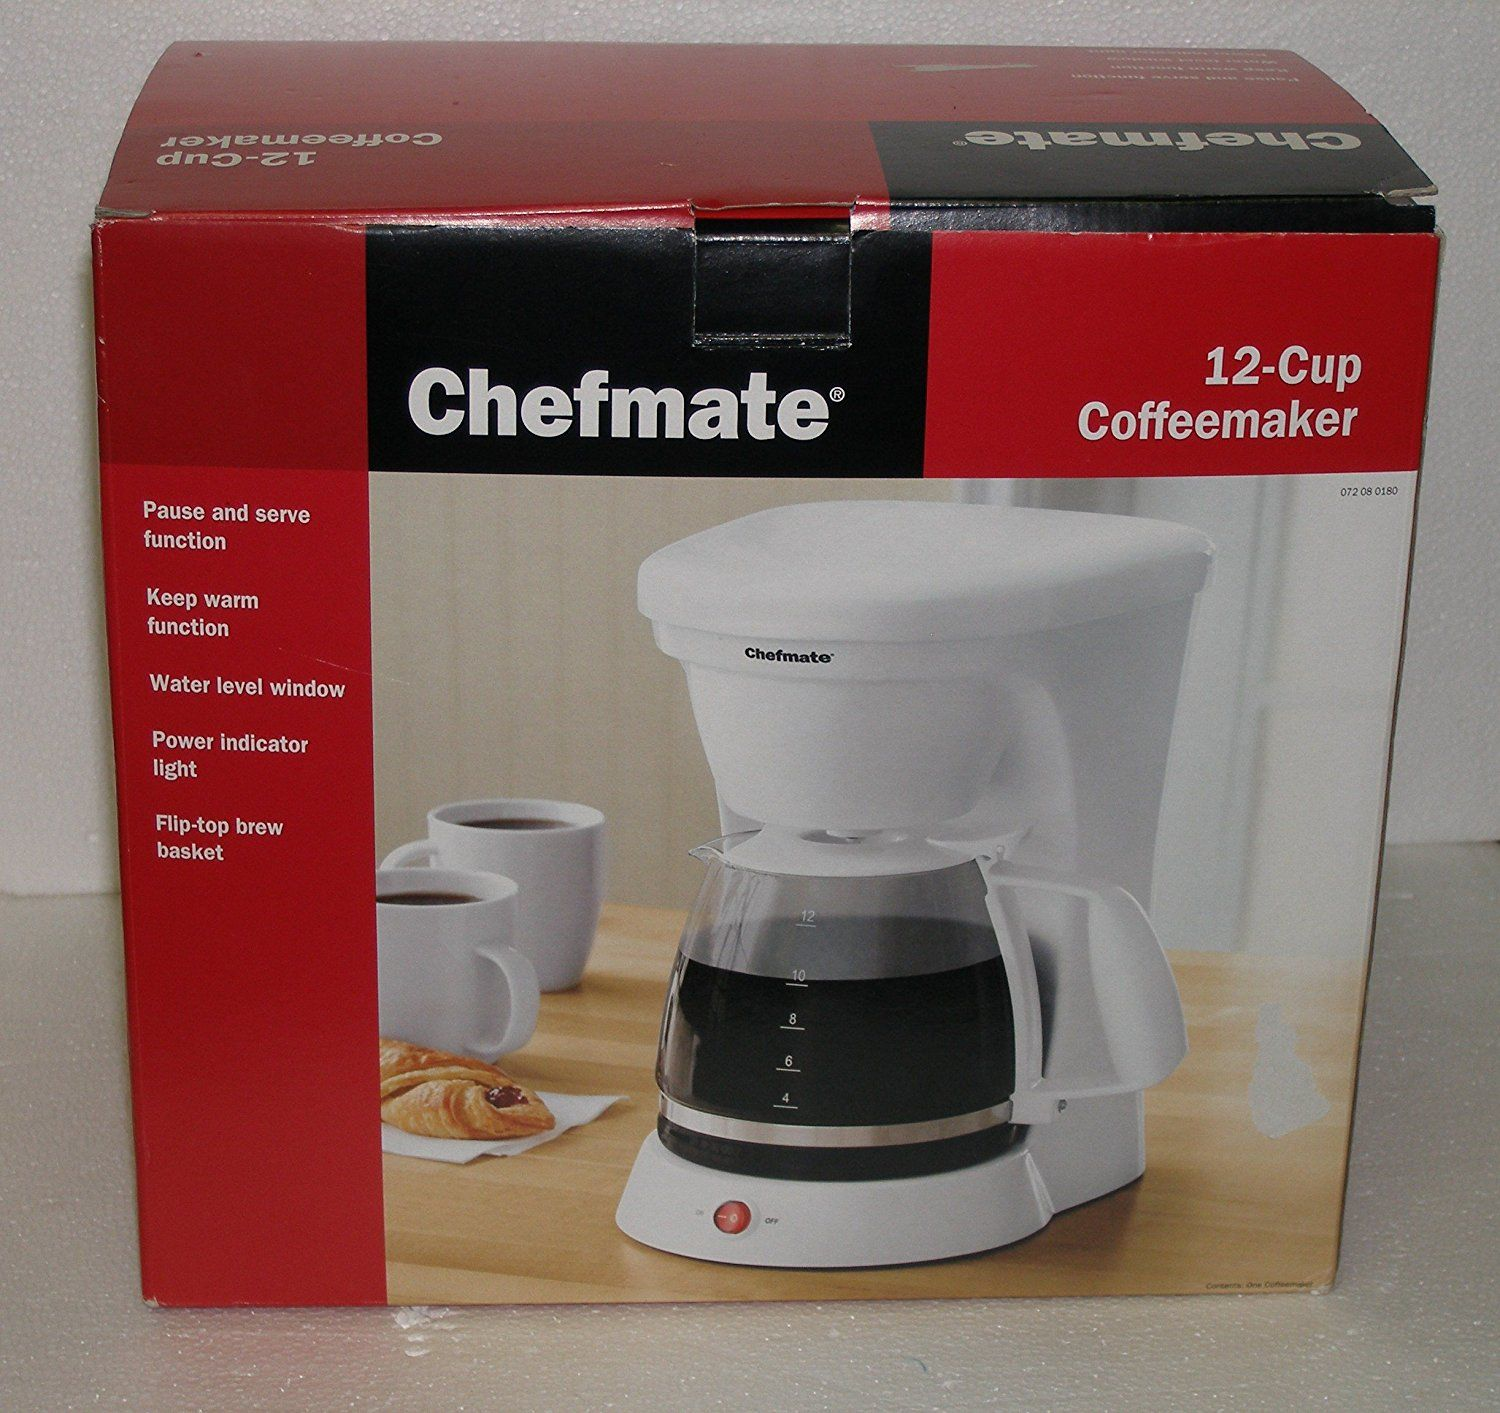 Chefmate cup coffeemaker in white check this awesome image